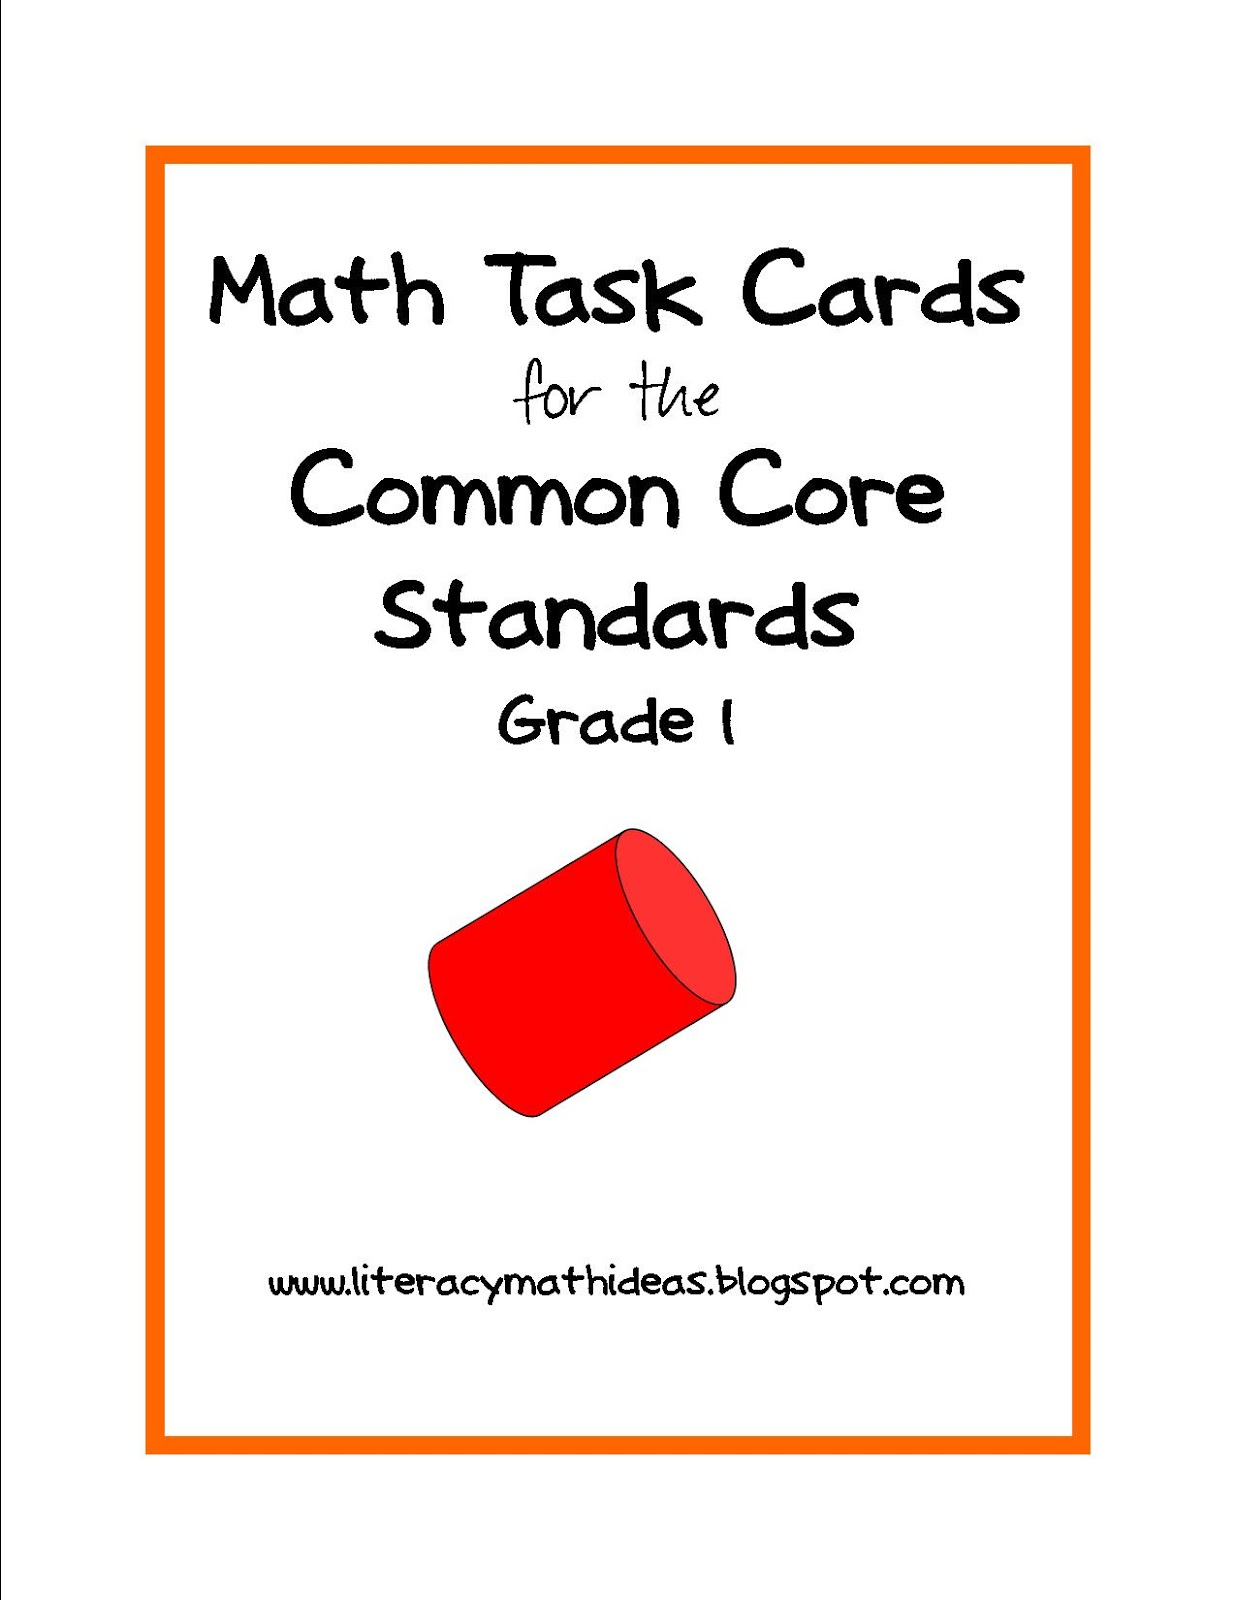 Literacy Amp Math Ideas Math Common Core Standards Task Cards For Grades 1 And 2